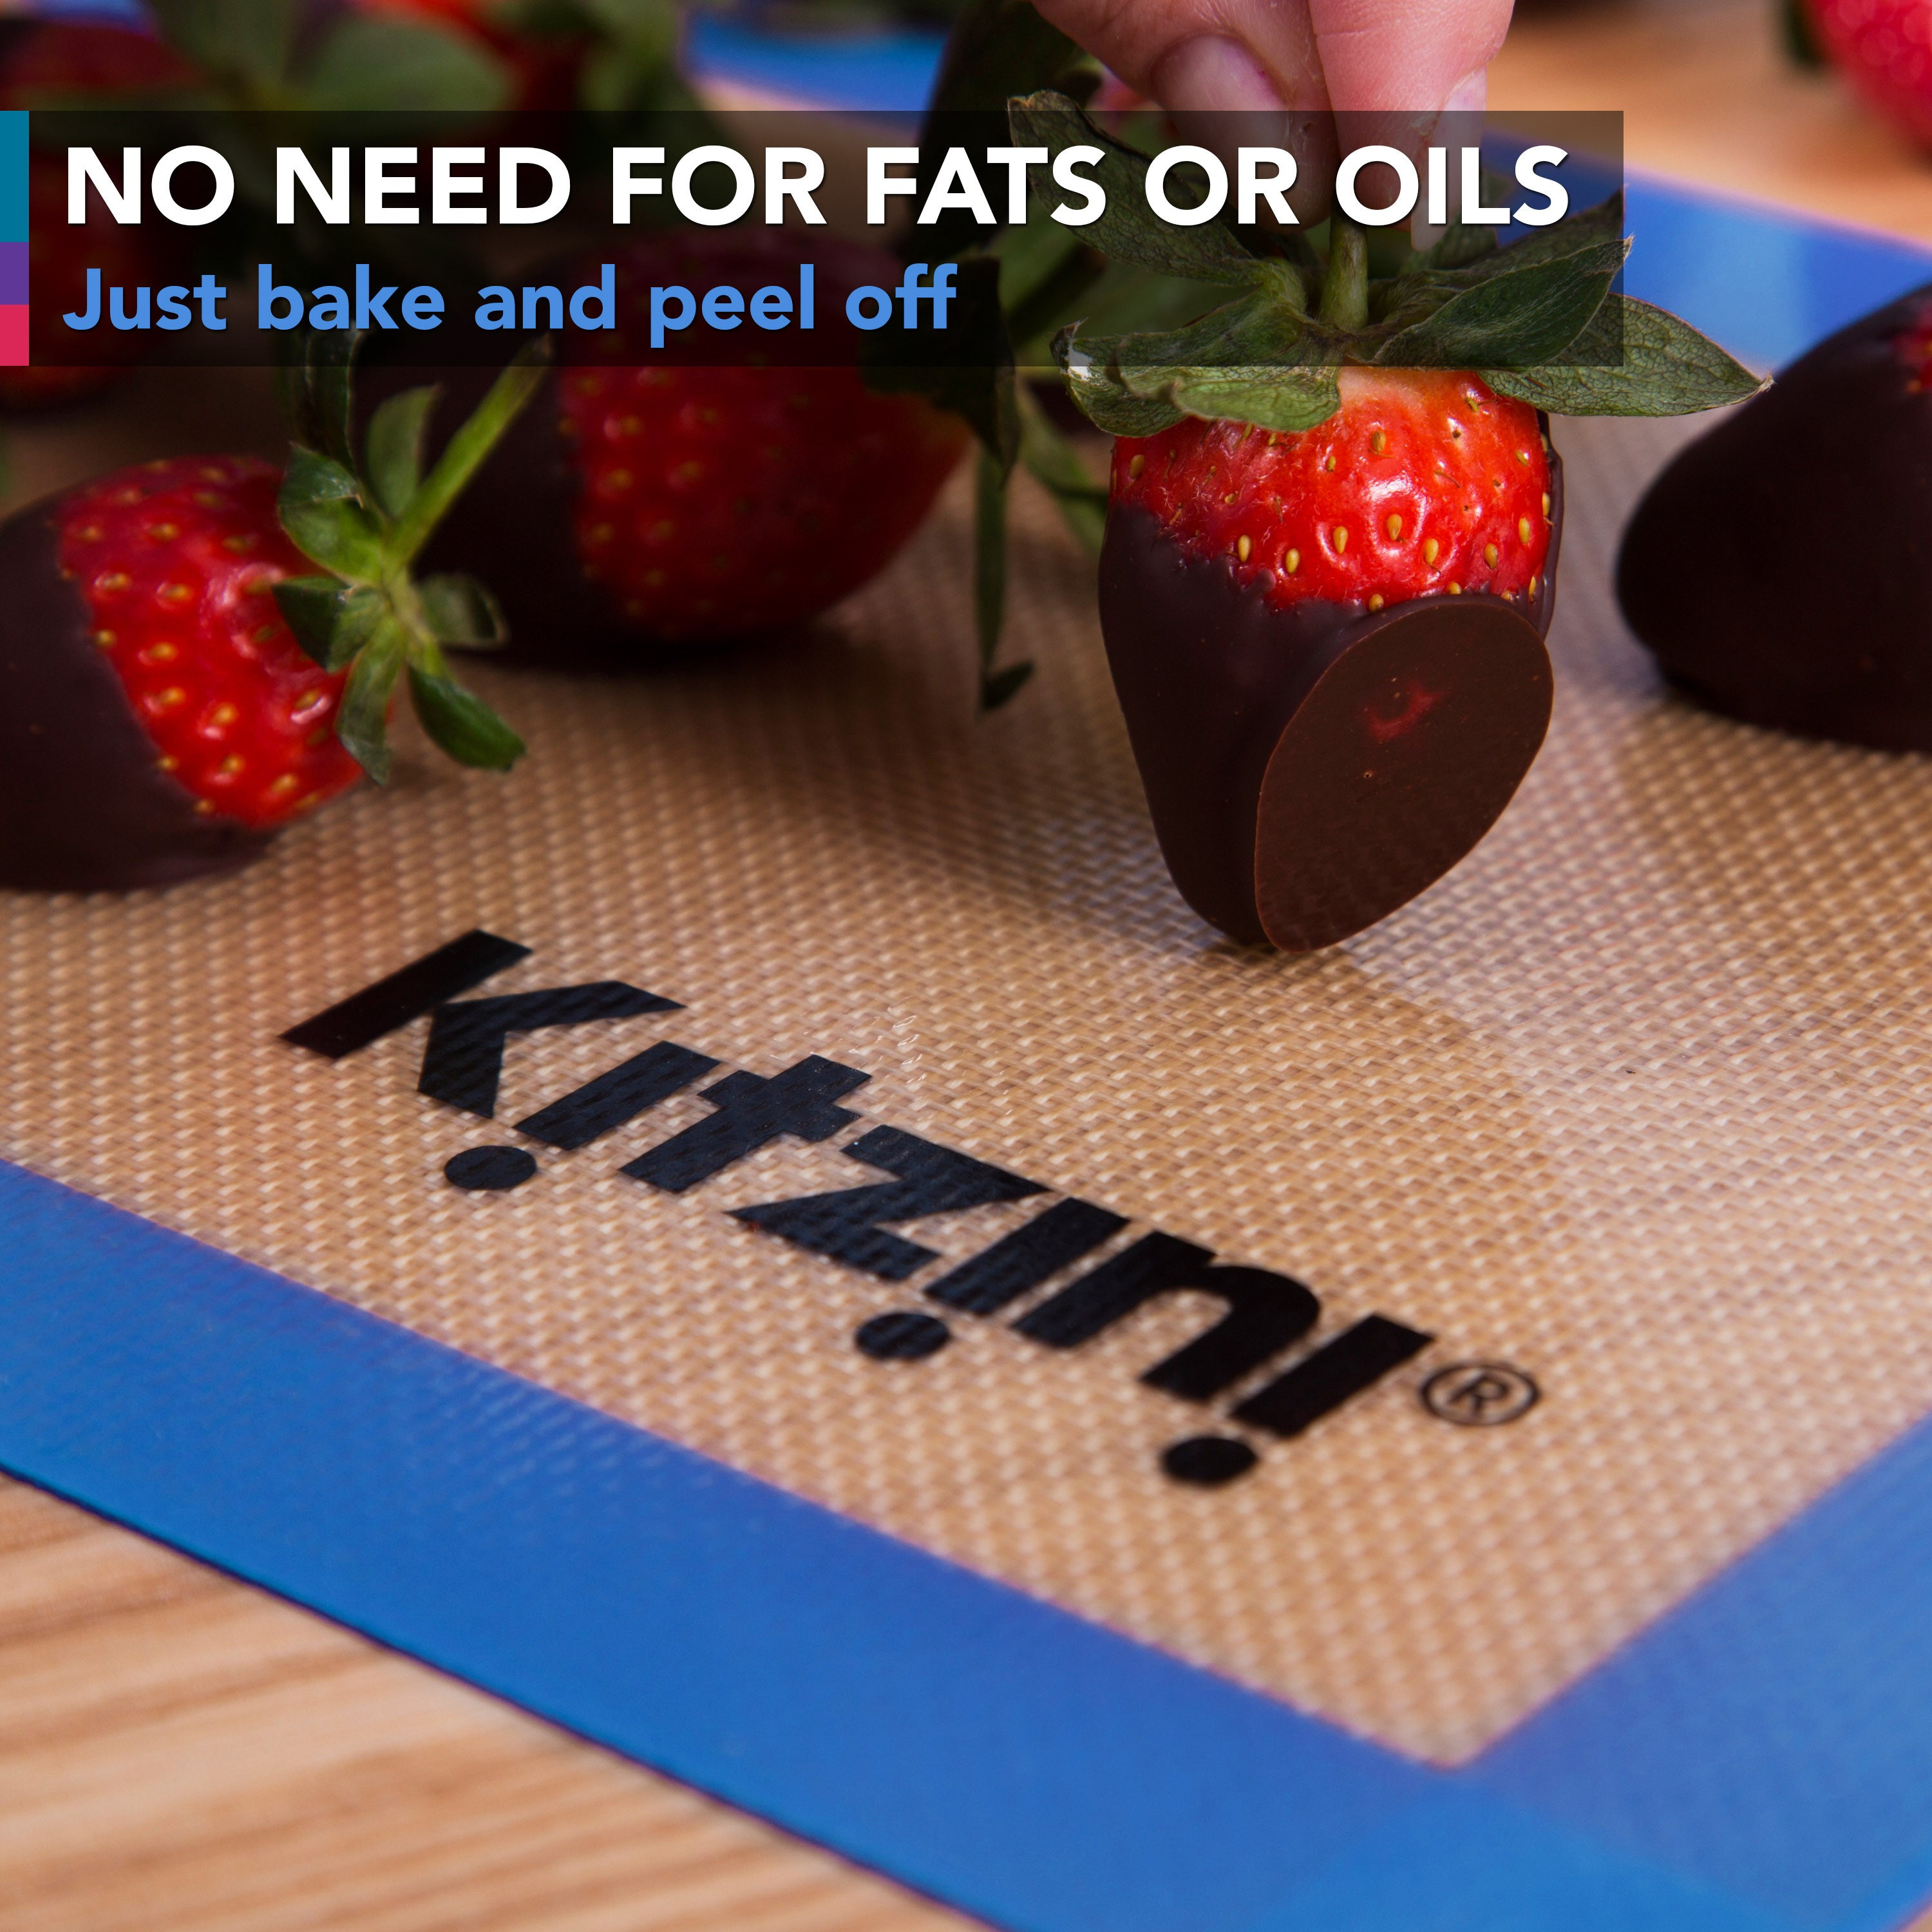 Kitzini Healthy Eating Silicone Baking Mat